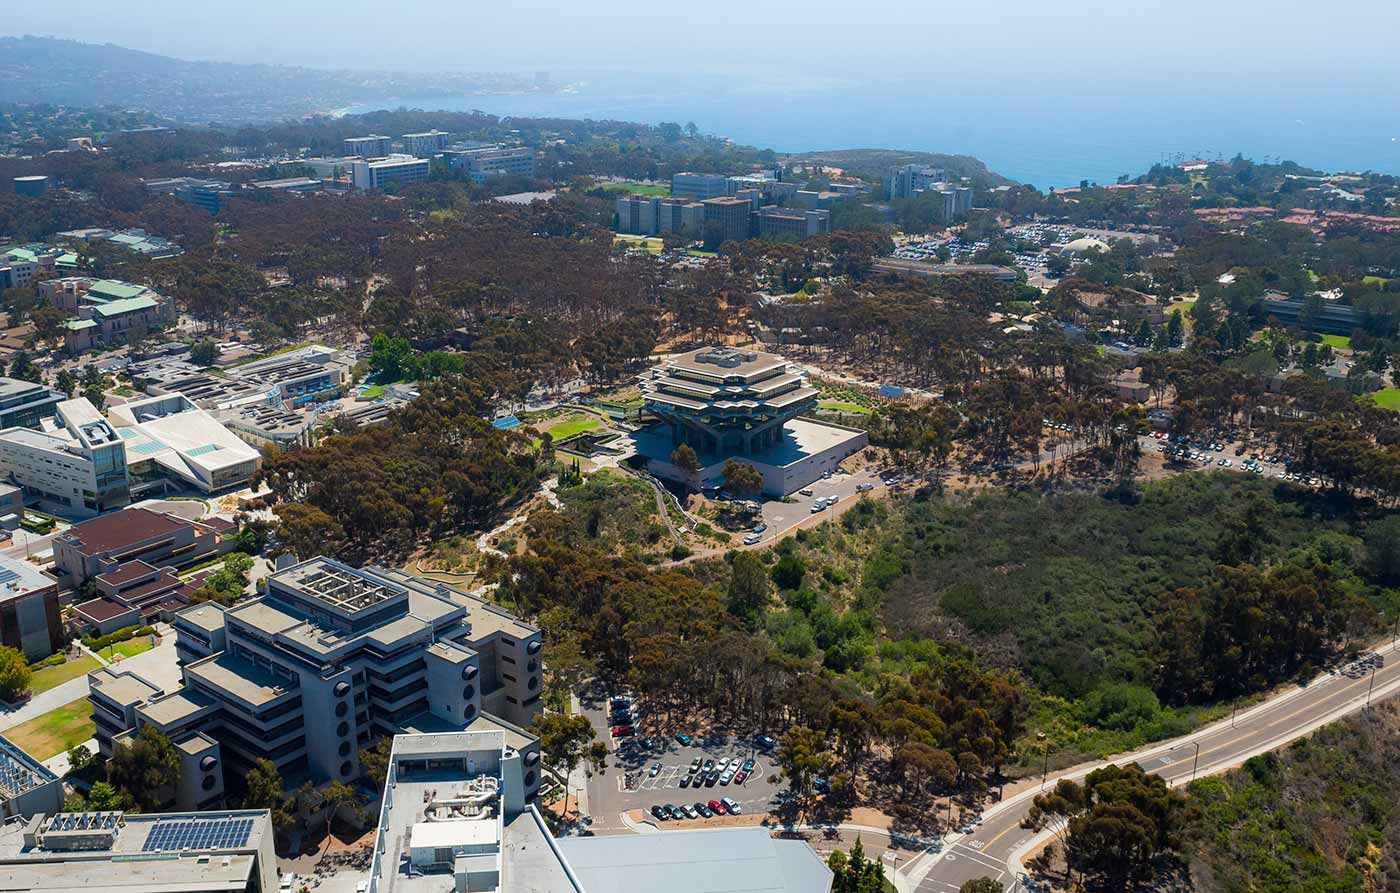 An aerial view of the University of California San Diego campus.